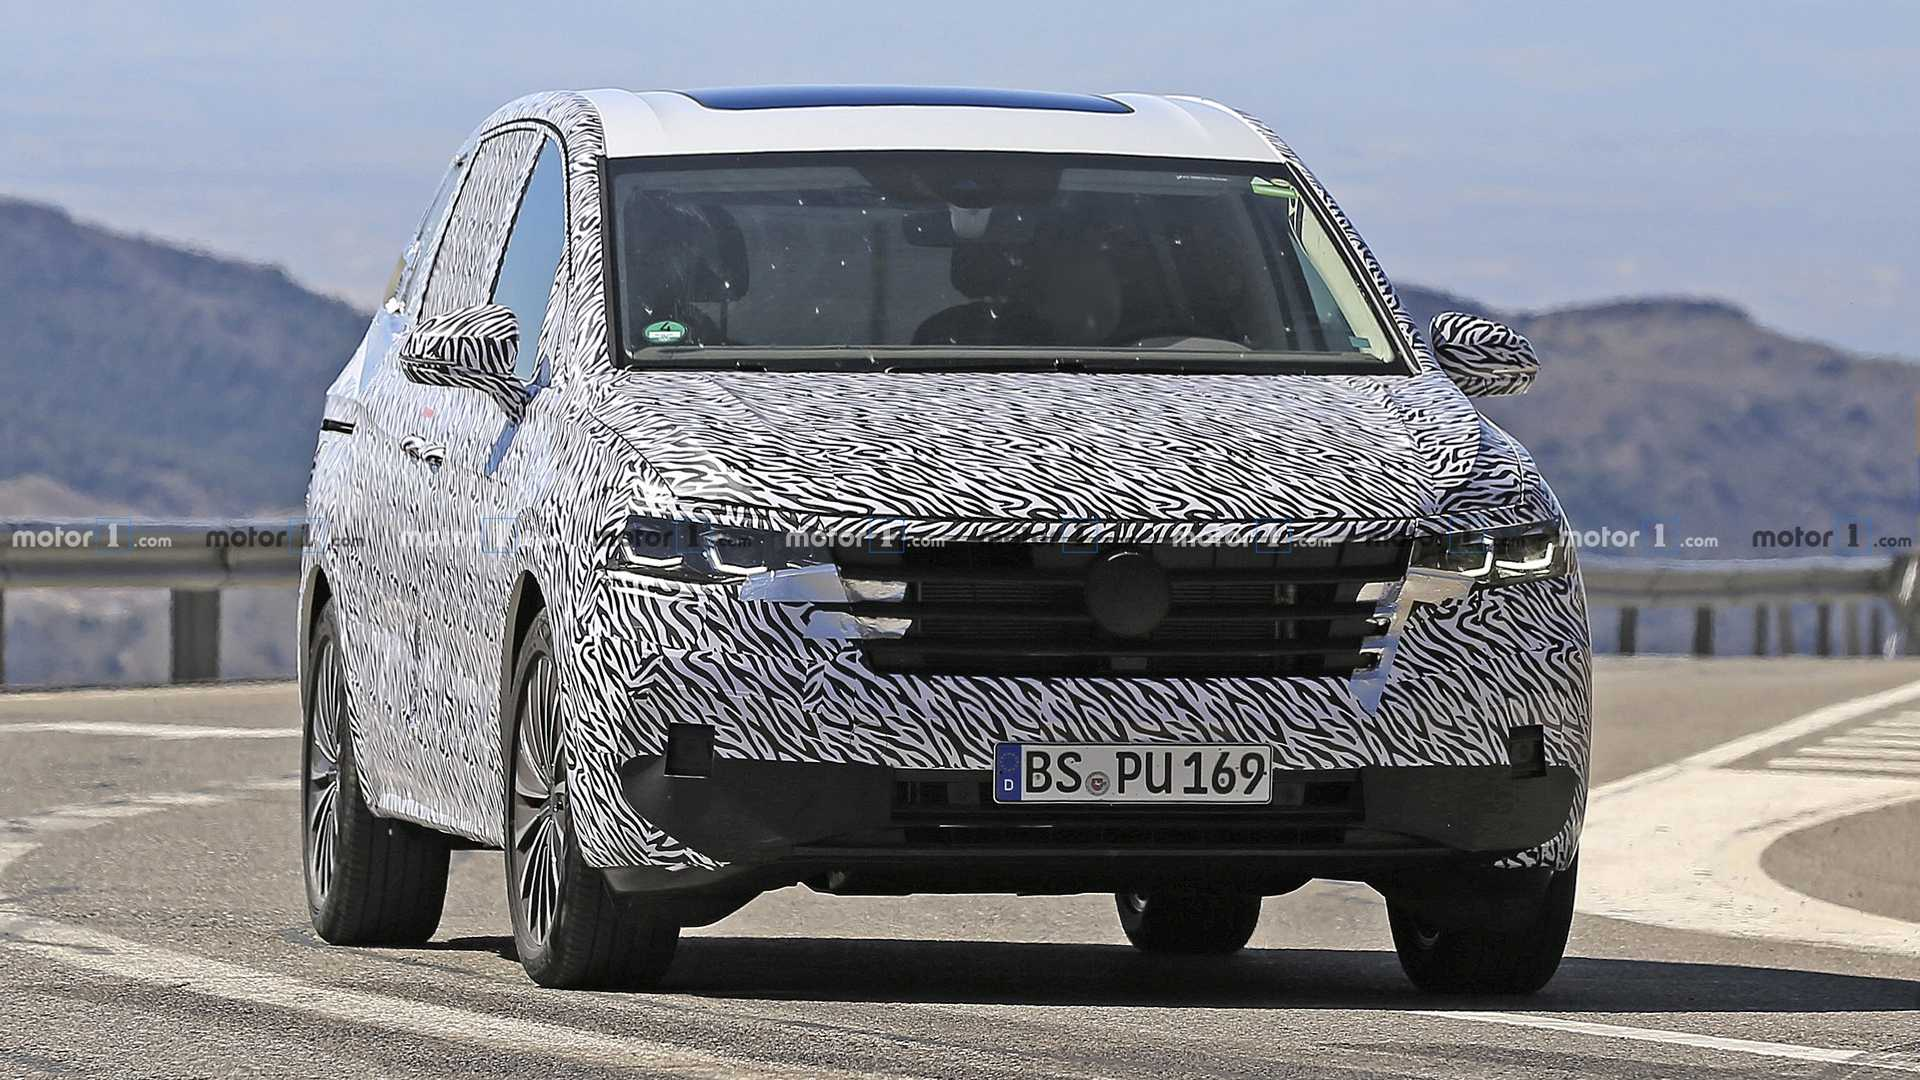 Bmw Of Newton >> VW Viloran Spy Shots Show New MPV For China